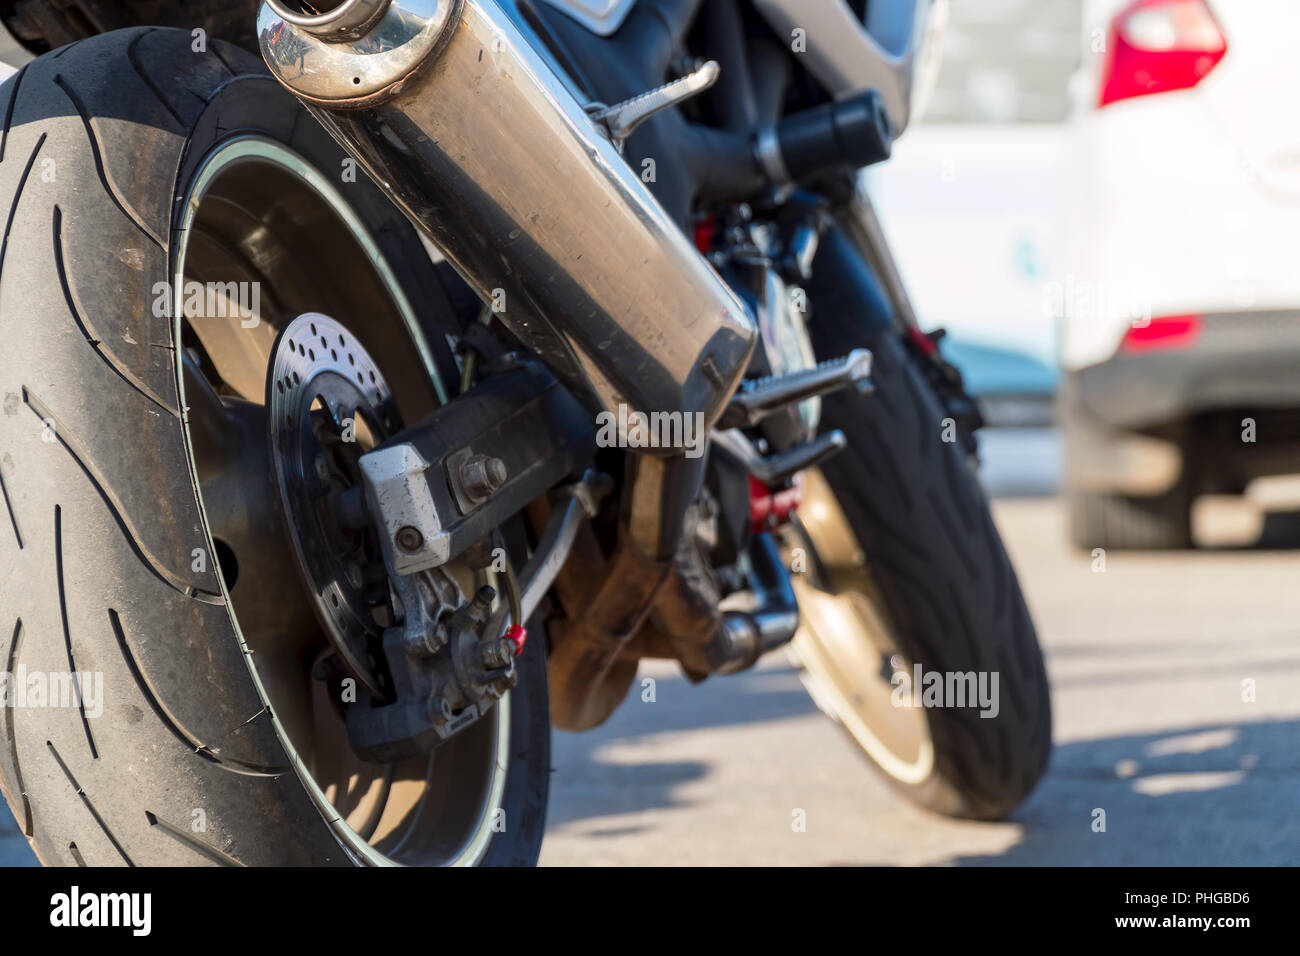 Rear view of motorcycle. Rear wheel, exhaust pipe. Soft focus, blurred background. - Stock Image